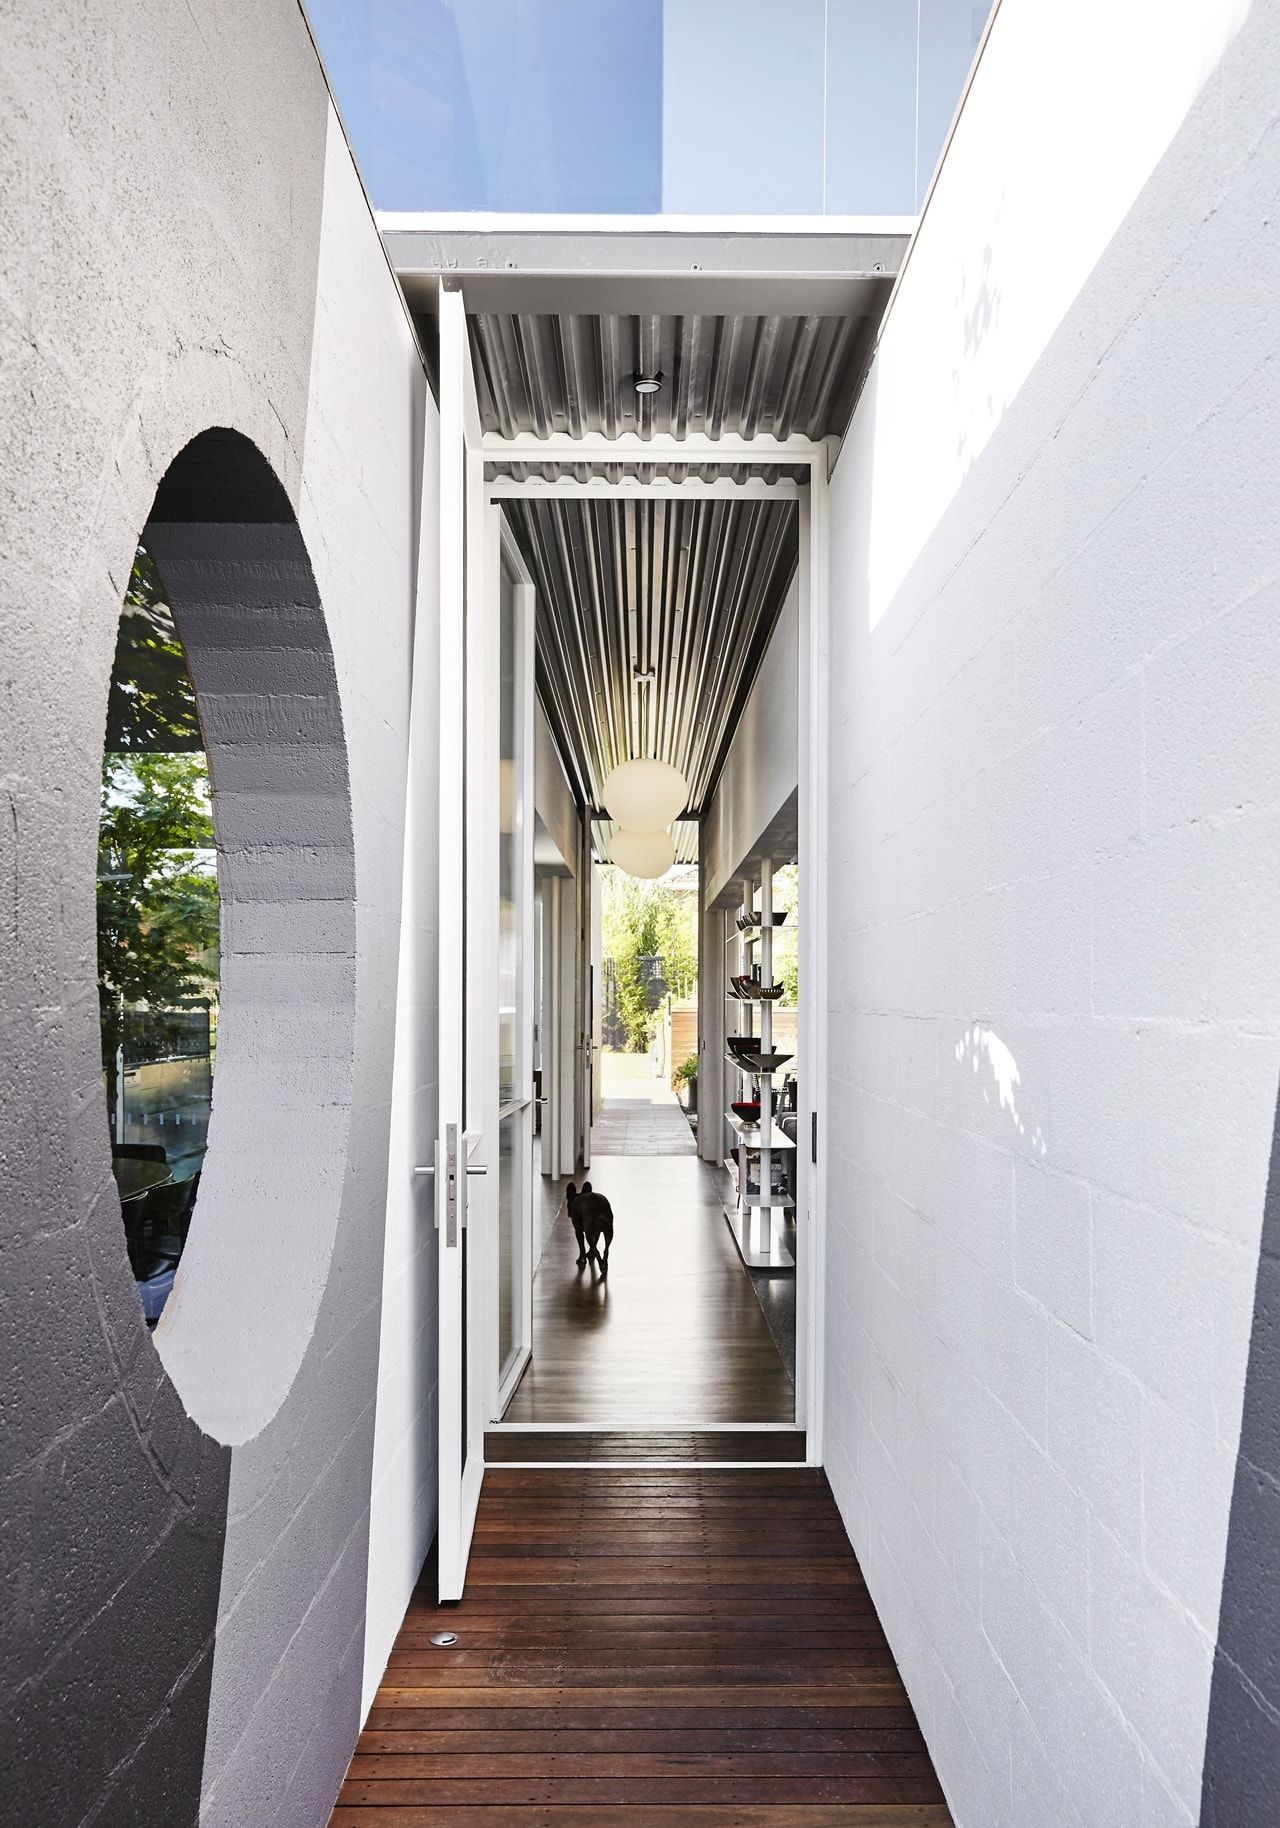 That house melbourne australia by austin maynard architects is not a small home s not a solution nor a new prototype for australian housing